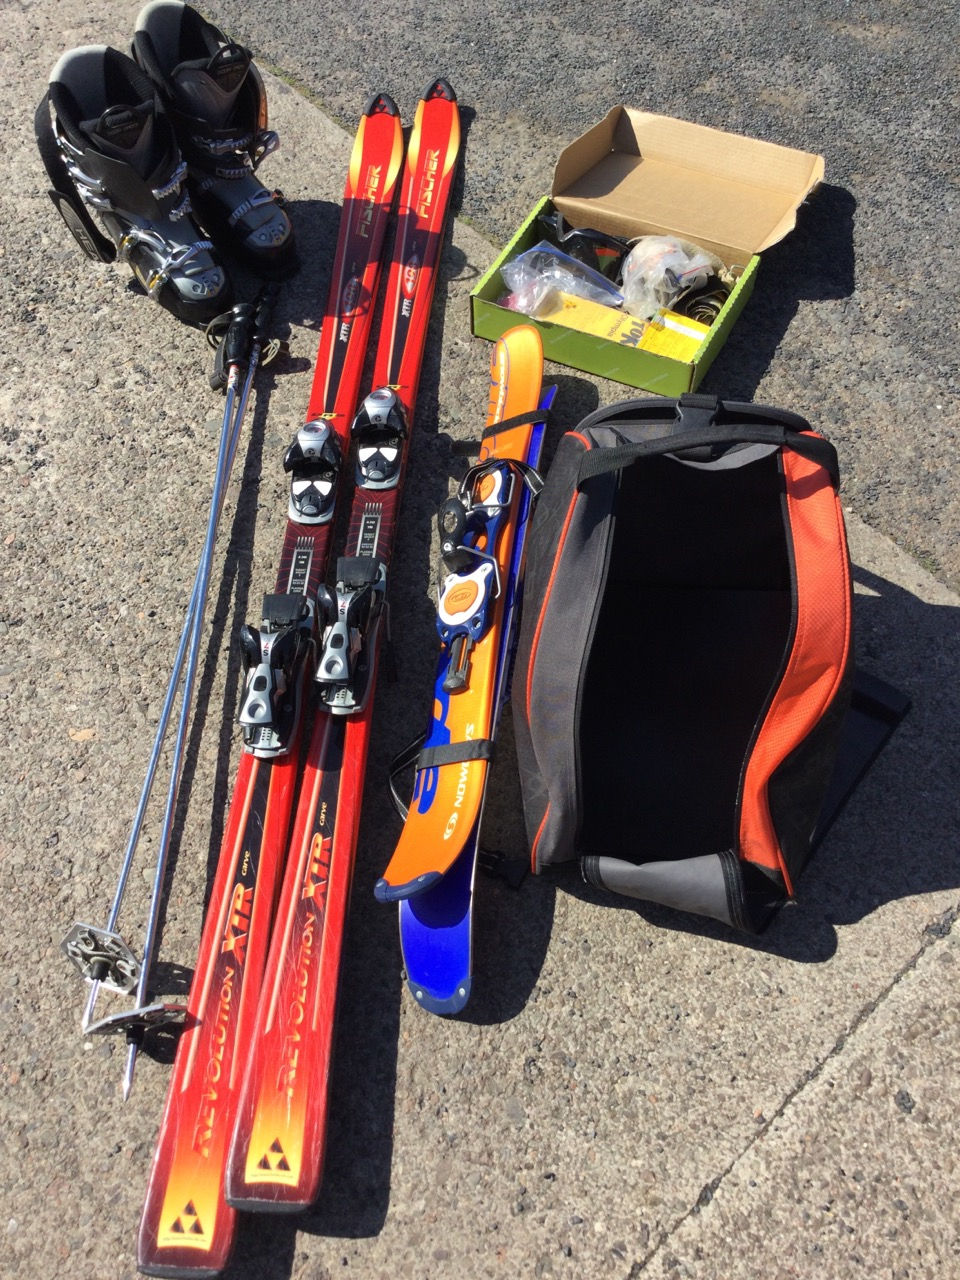 Miscellaneous skiing gear - a pair of red Fischer 190 carver skis with Salomon bindings, a pair of - Image 3 of 3